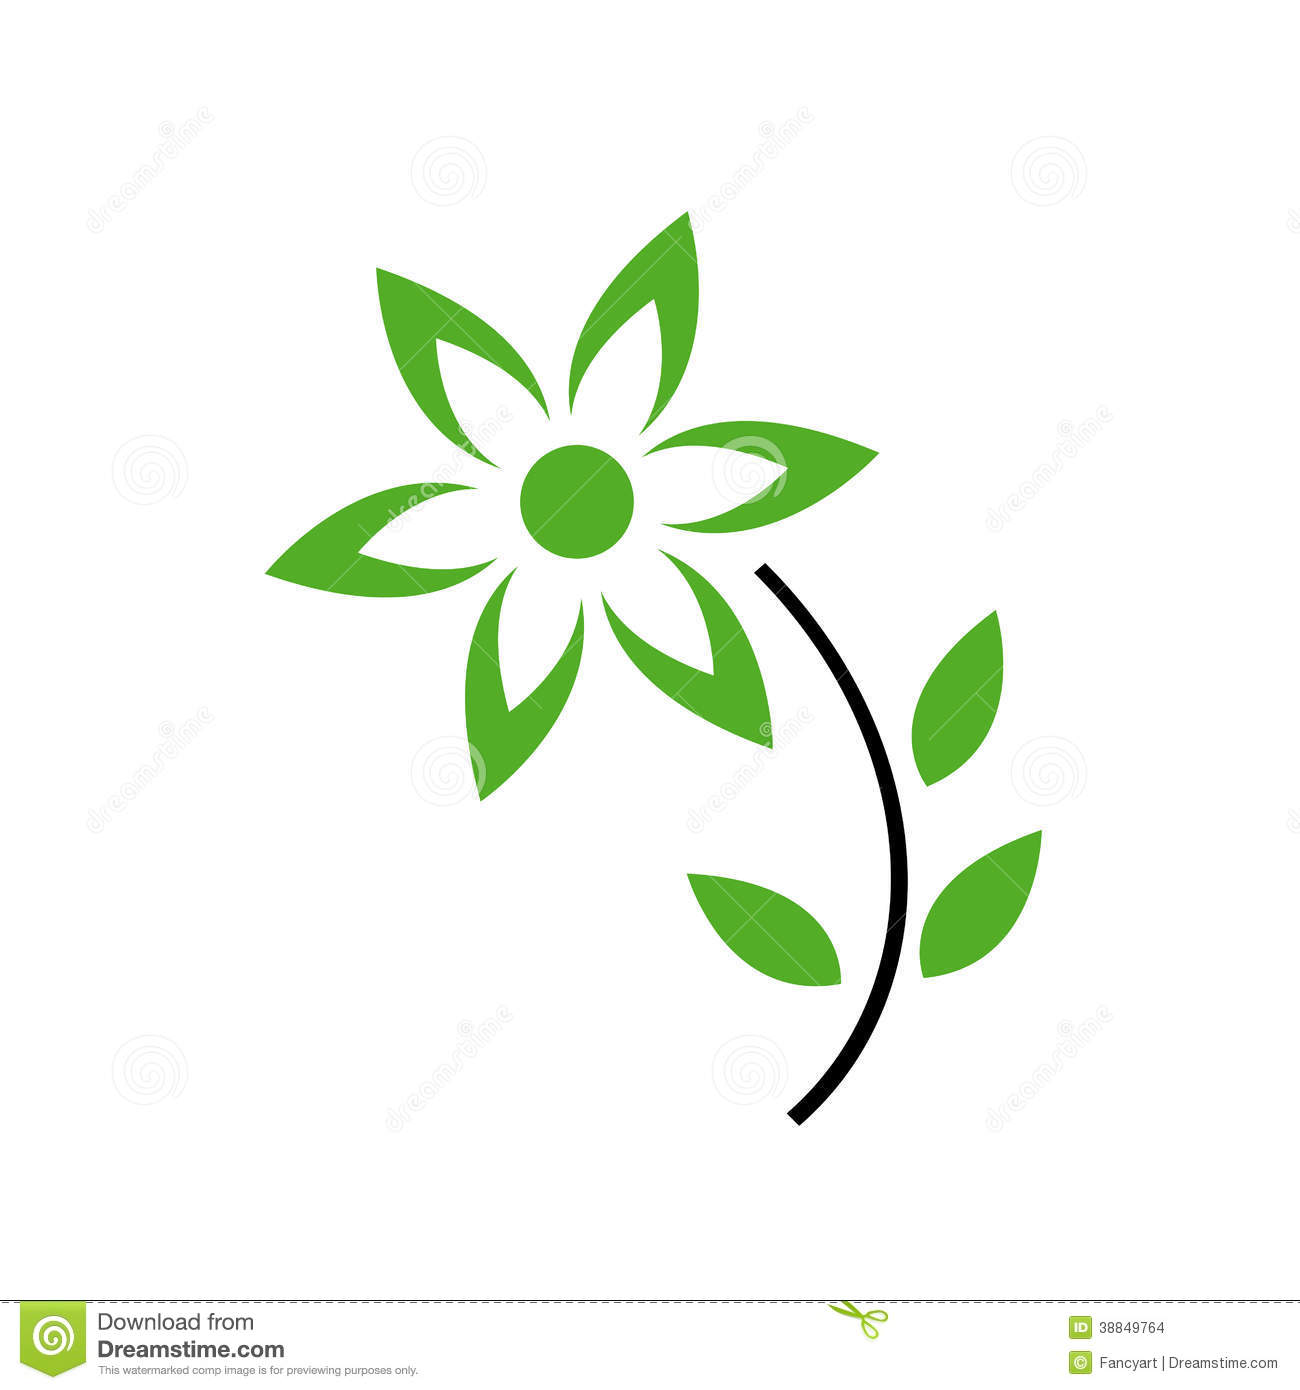 https://thumbs.dreamstime.com/z/flower-green-leaves-petals-logo-concept-38849764.jpg